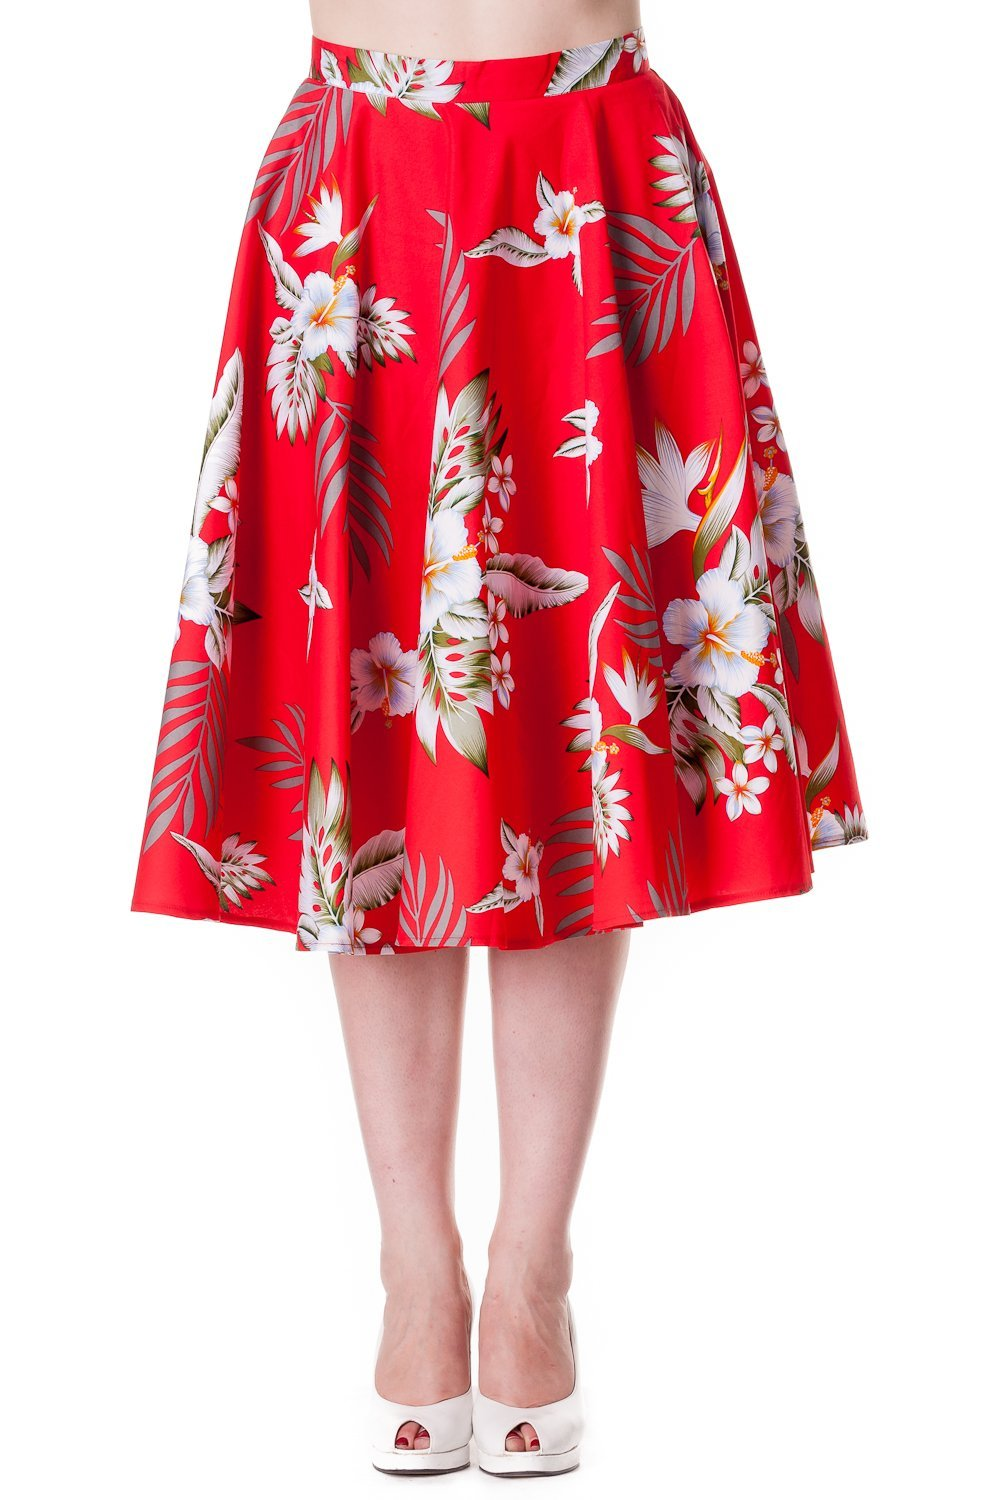 Hell Bunny Red Candy Skirt - Bohemian Finds